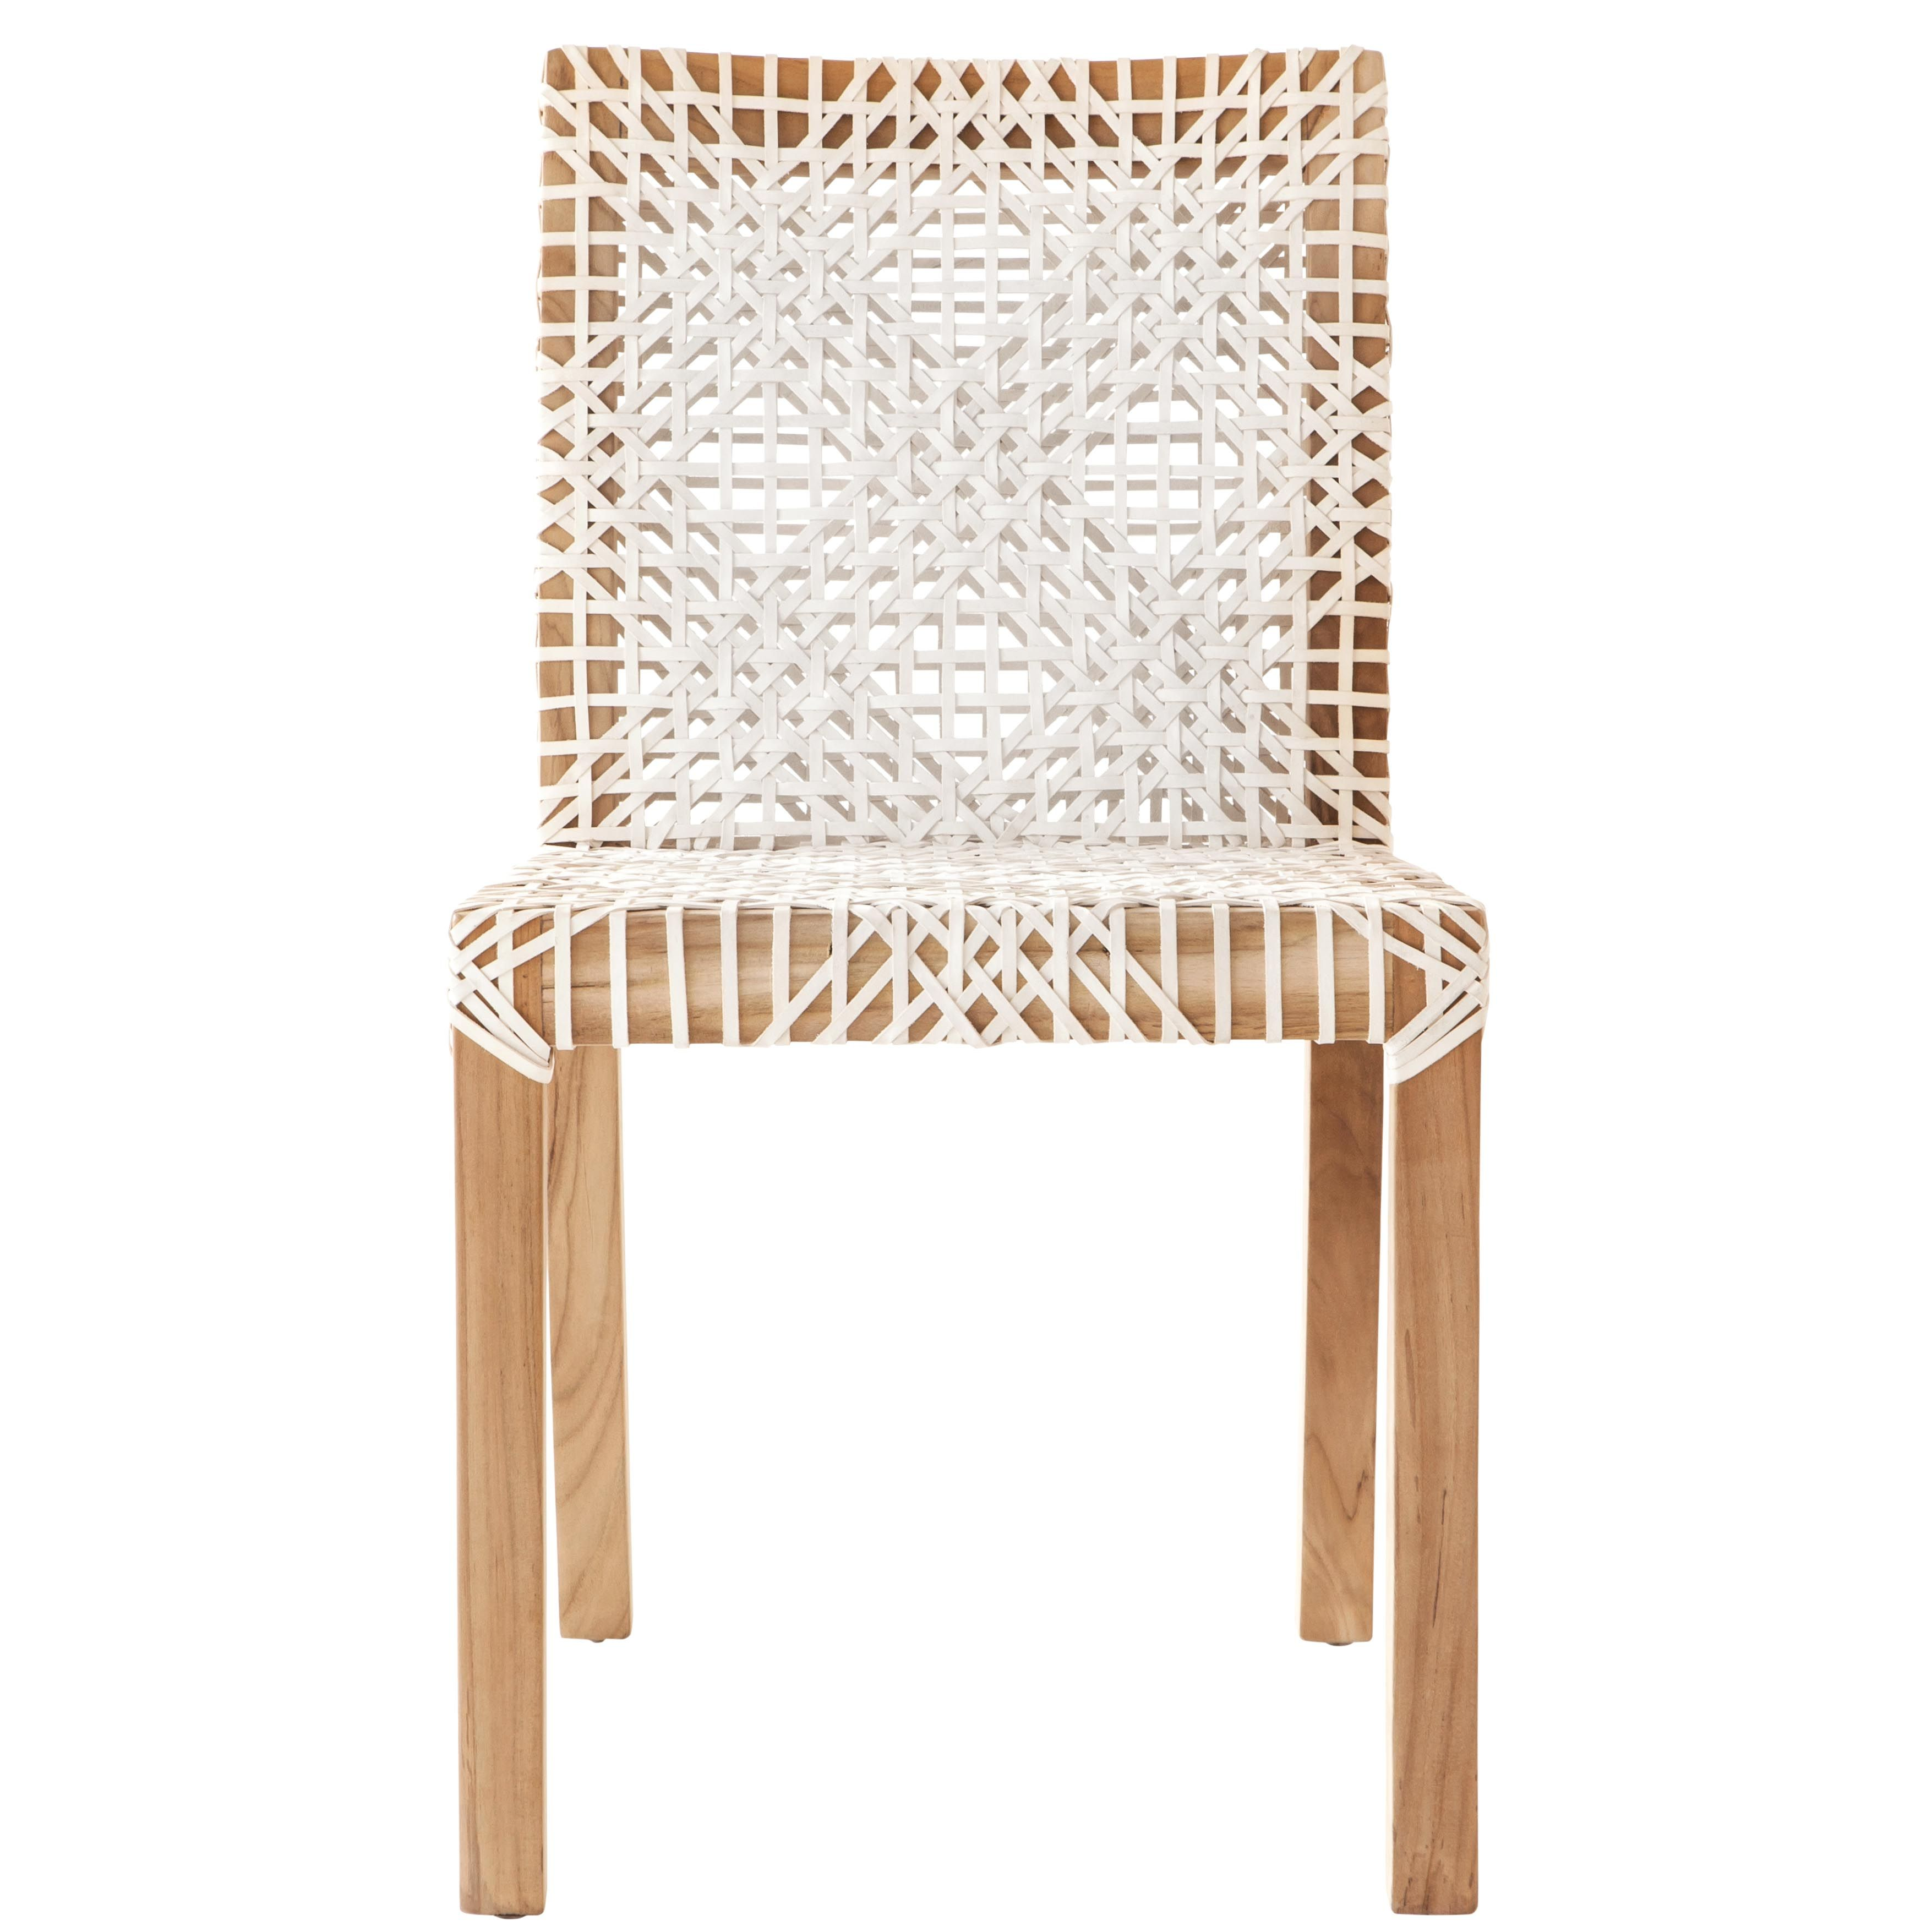 The Best Woven Dining Chairs Idea For Your Wicker Outdoor Dining Sets Brisbane Appealing Woven Dining Dining Chairs Dining Chairs For Sale Woven Dining Chairs